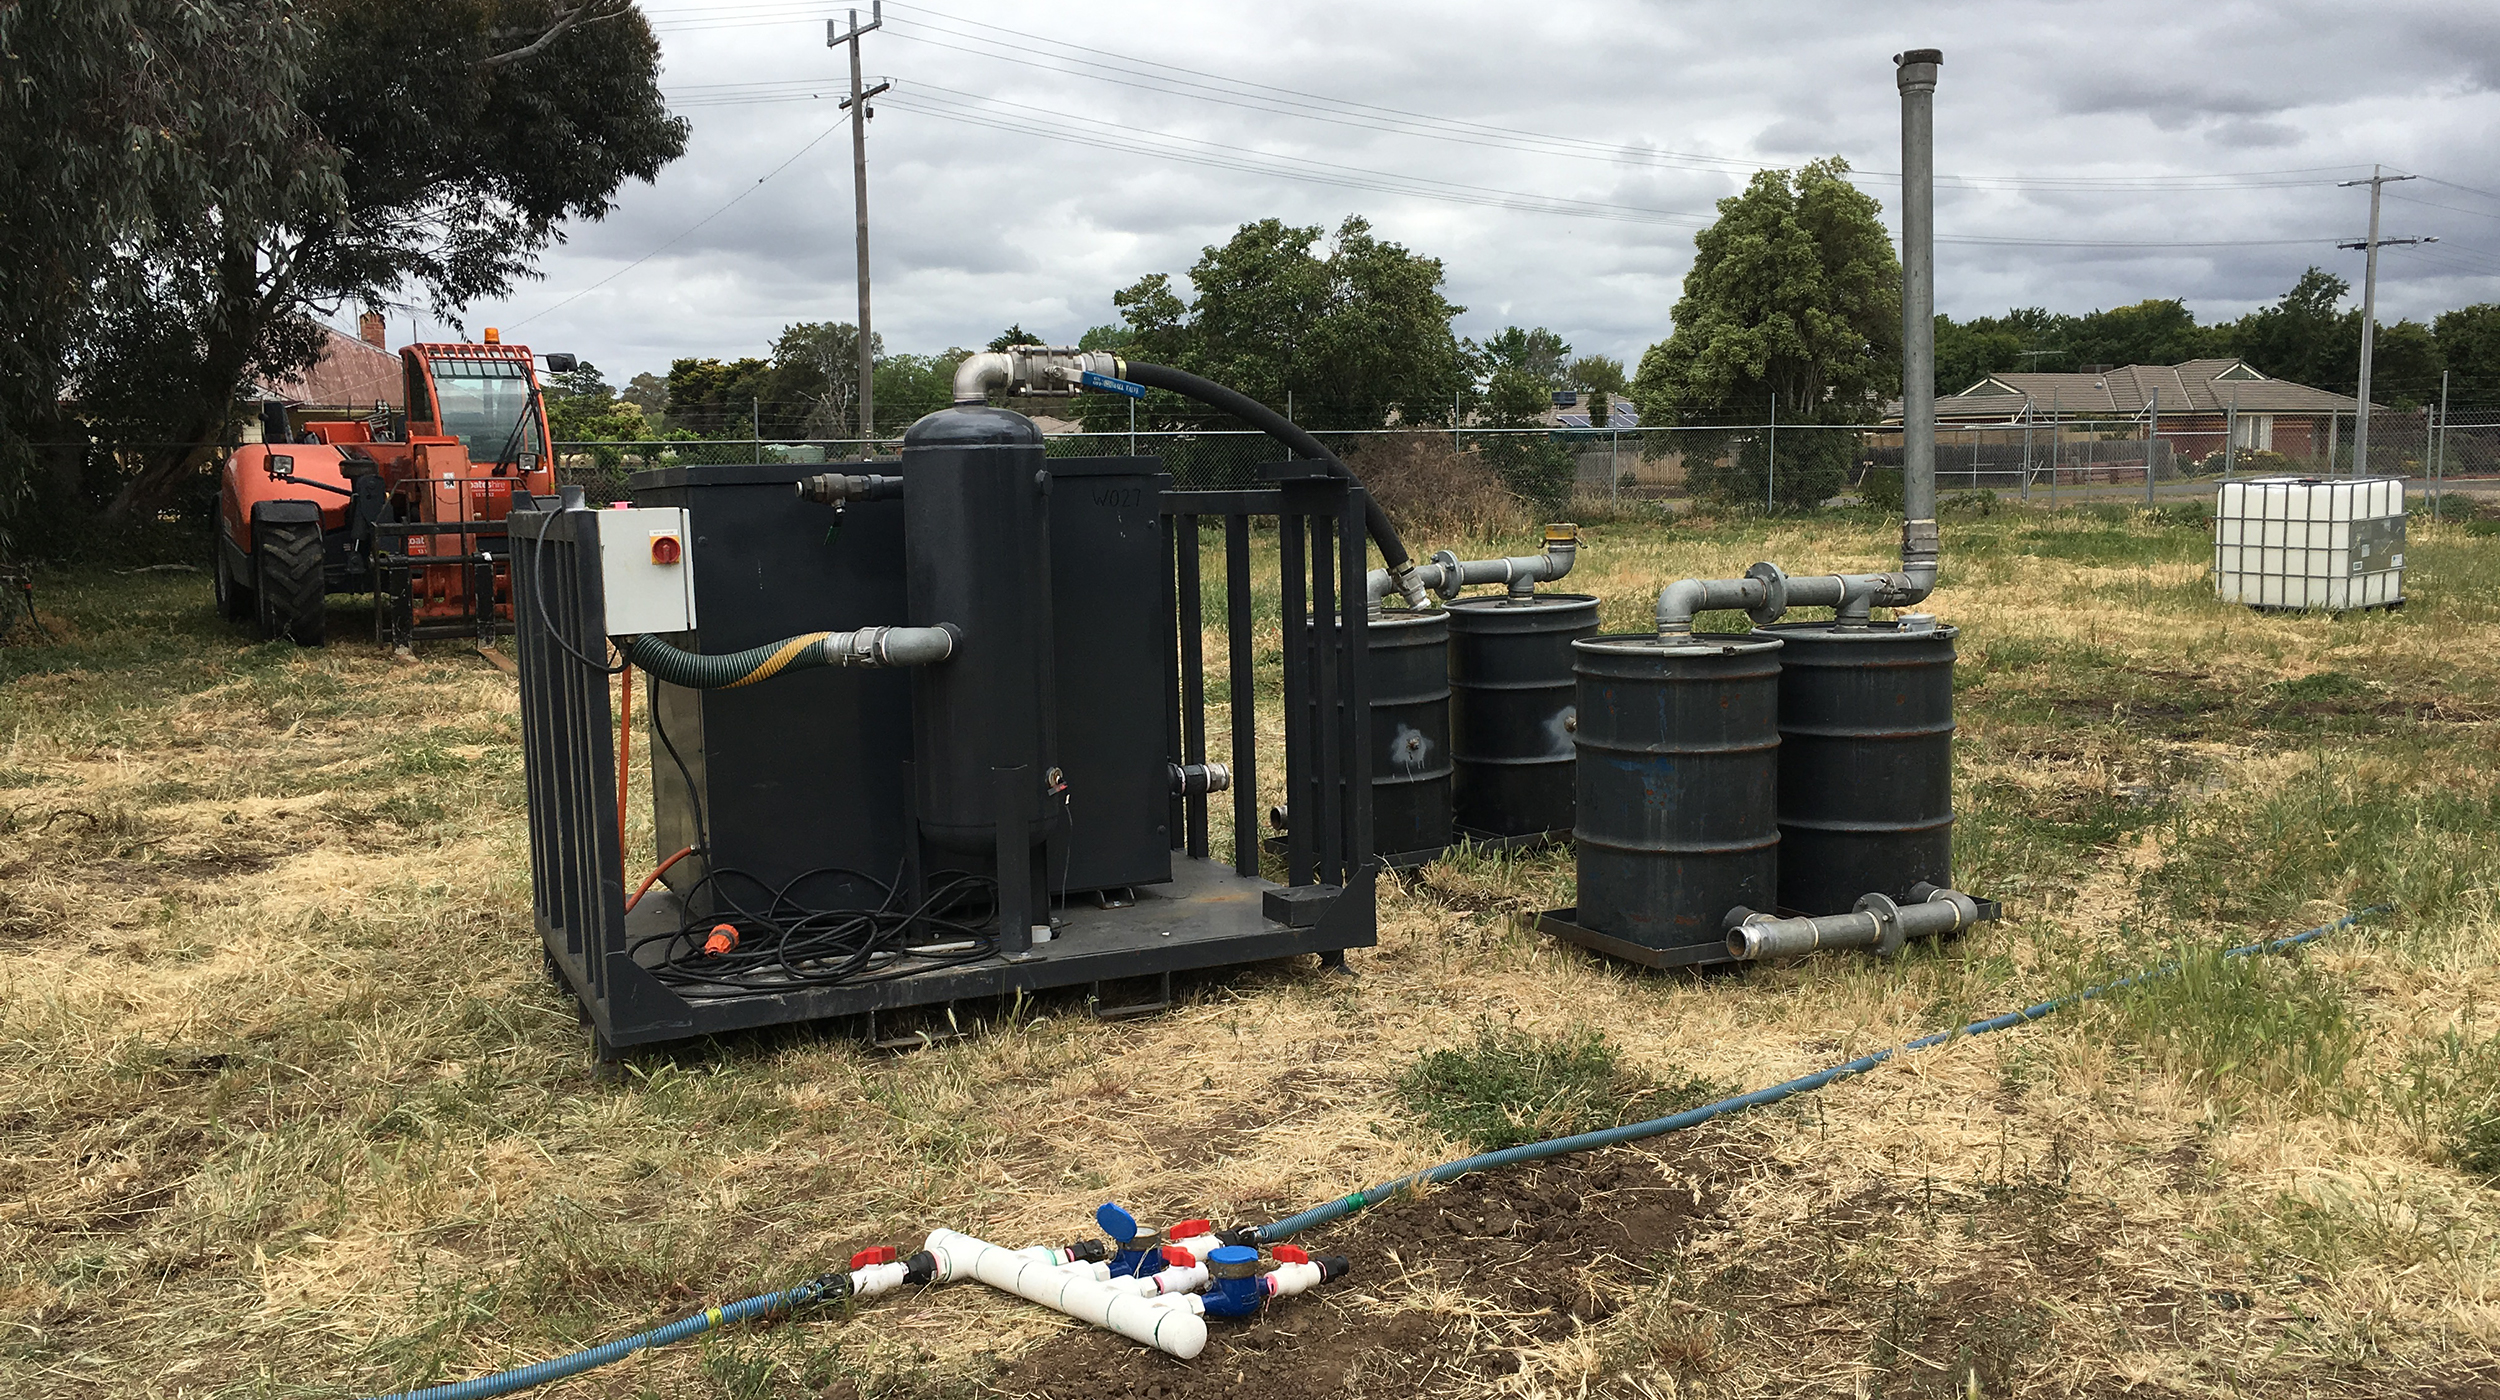 FORMER BACCHUS MARSH GASWORKS - VICTORIA - BlueSphere has been engaged on this project since 2011 undertaking a complex range of soil and groundwater investigations through to remedial design and implementation which will see this former gasworks site rendered suitable for public use.